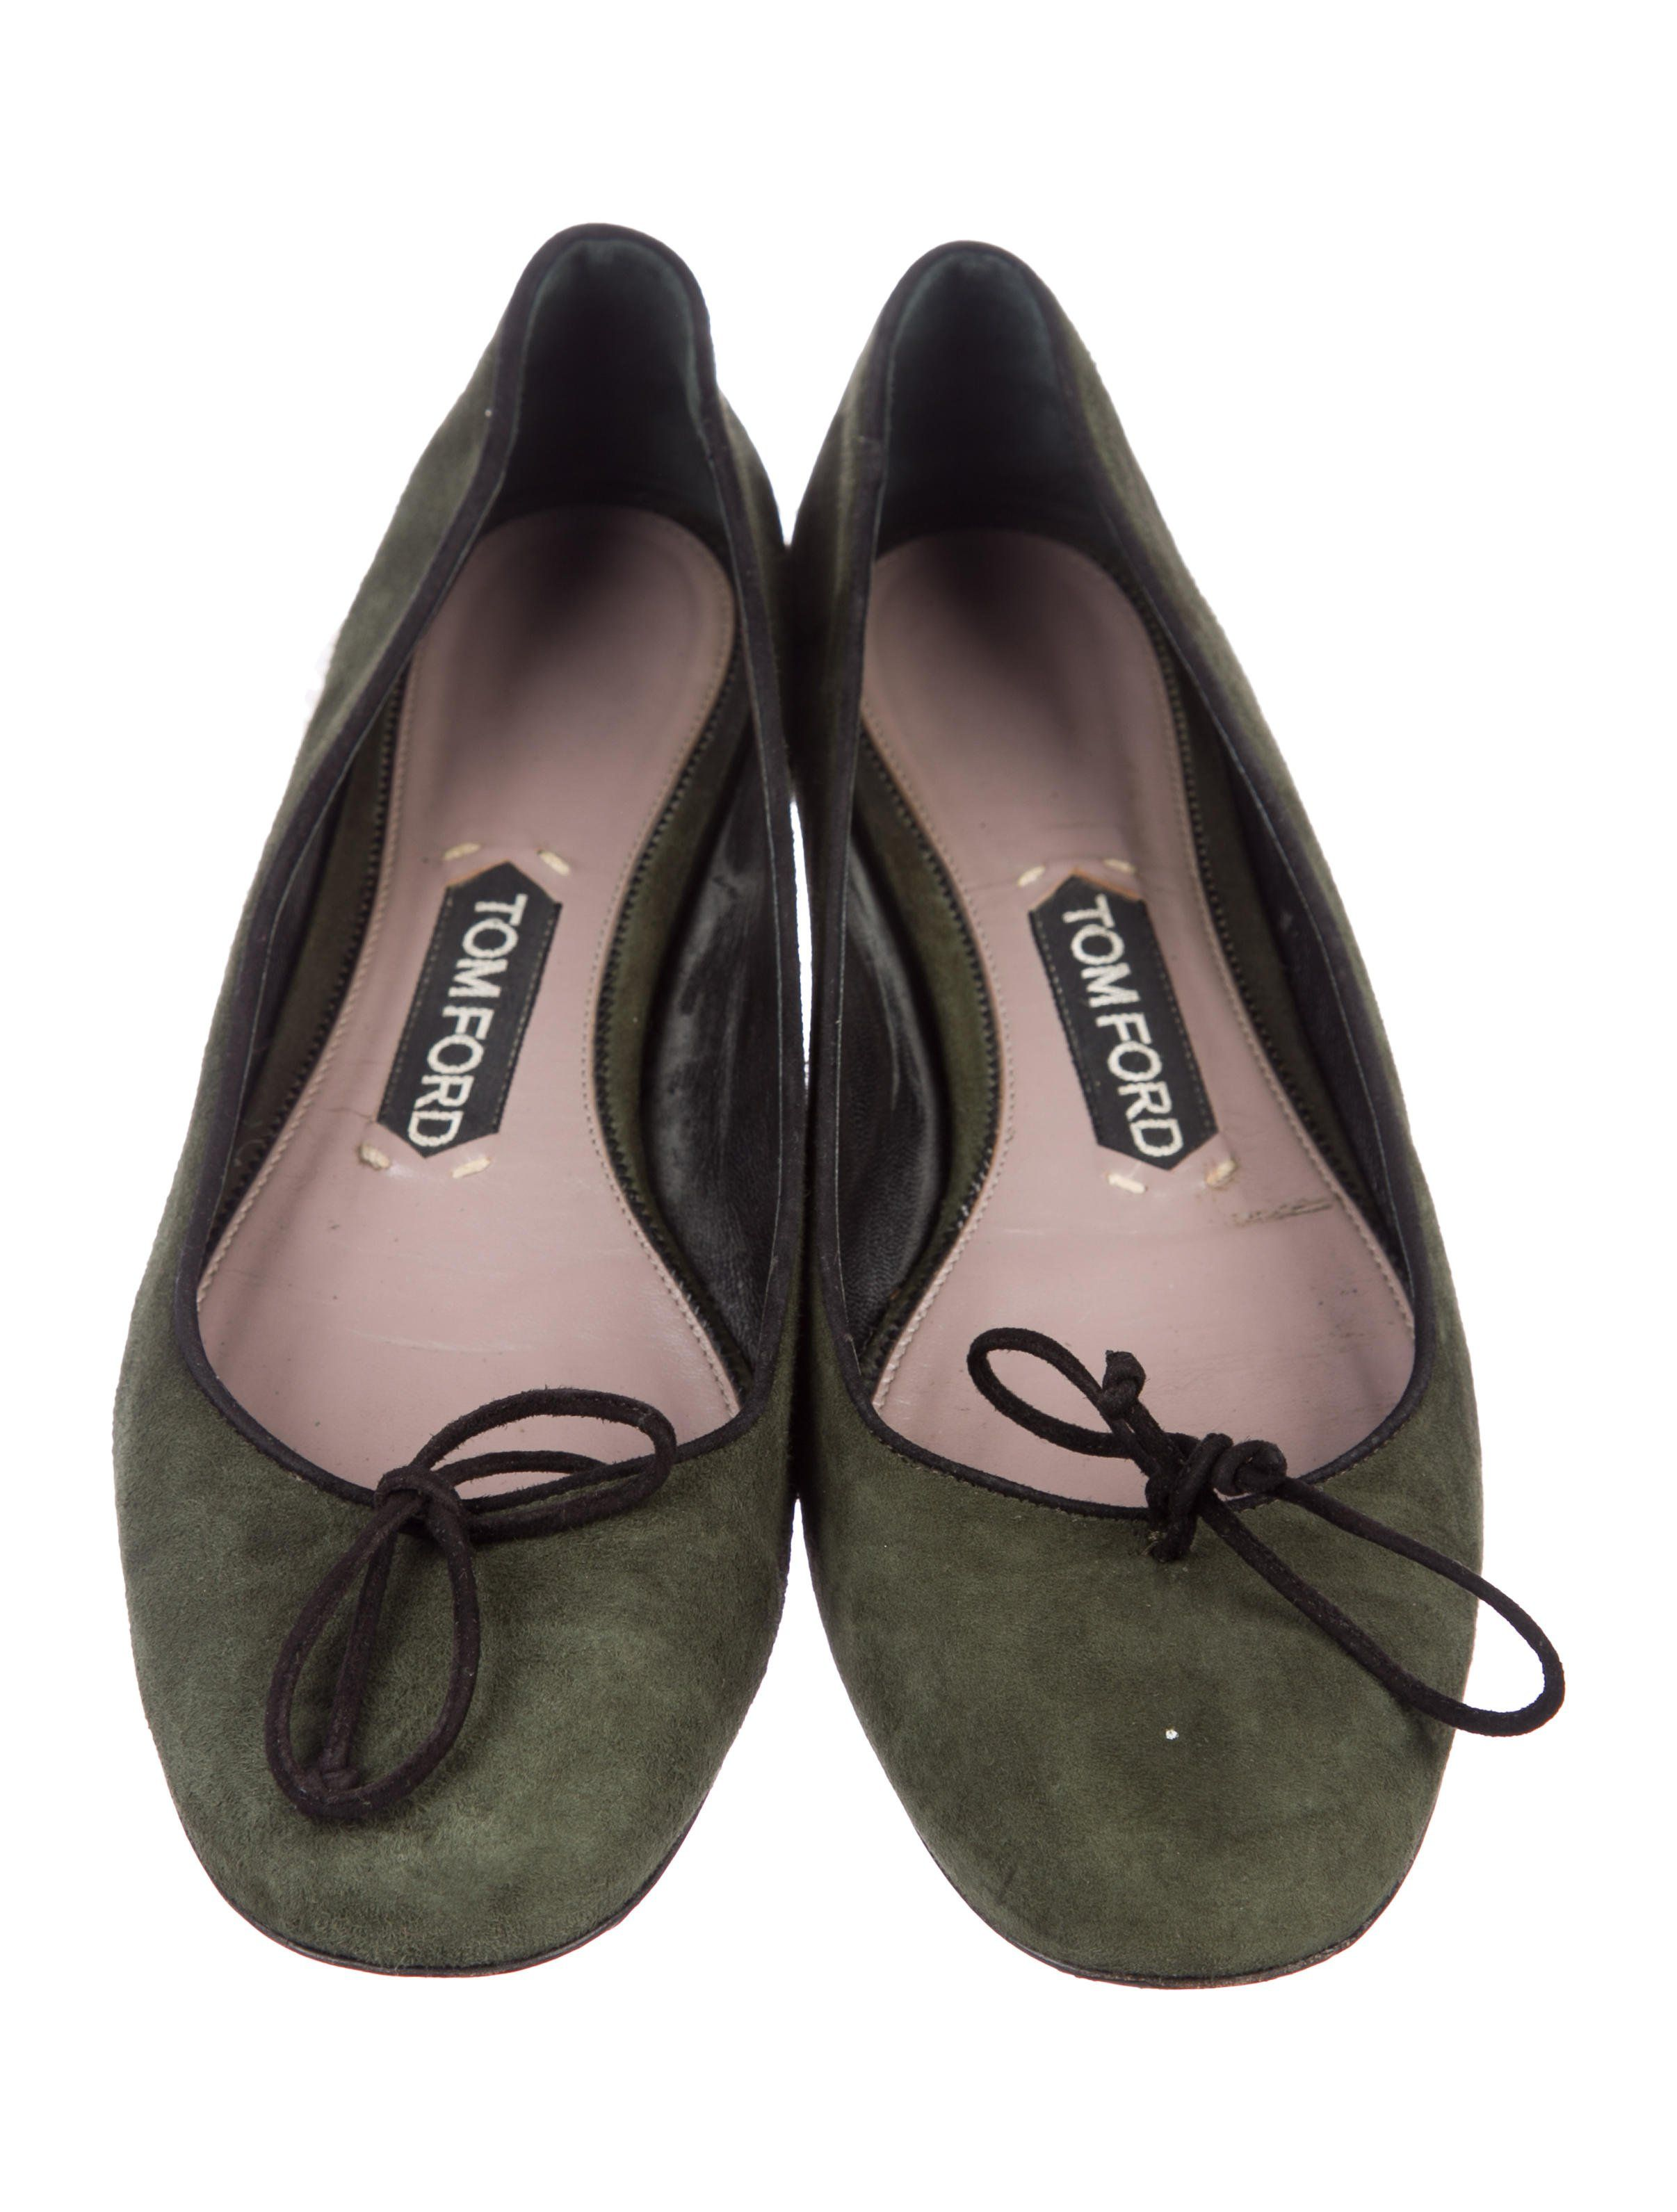 f6a960daeaf Olive green suede Tom Ford round-toe flats with tonal stitching